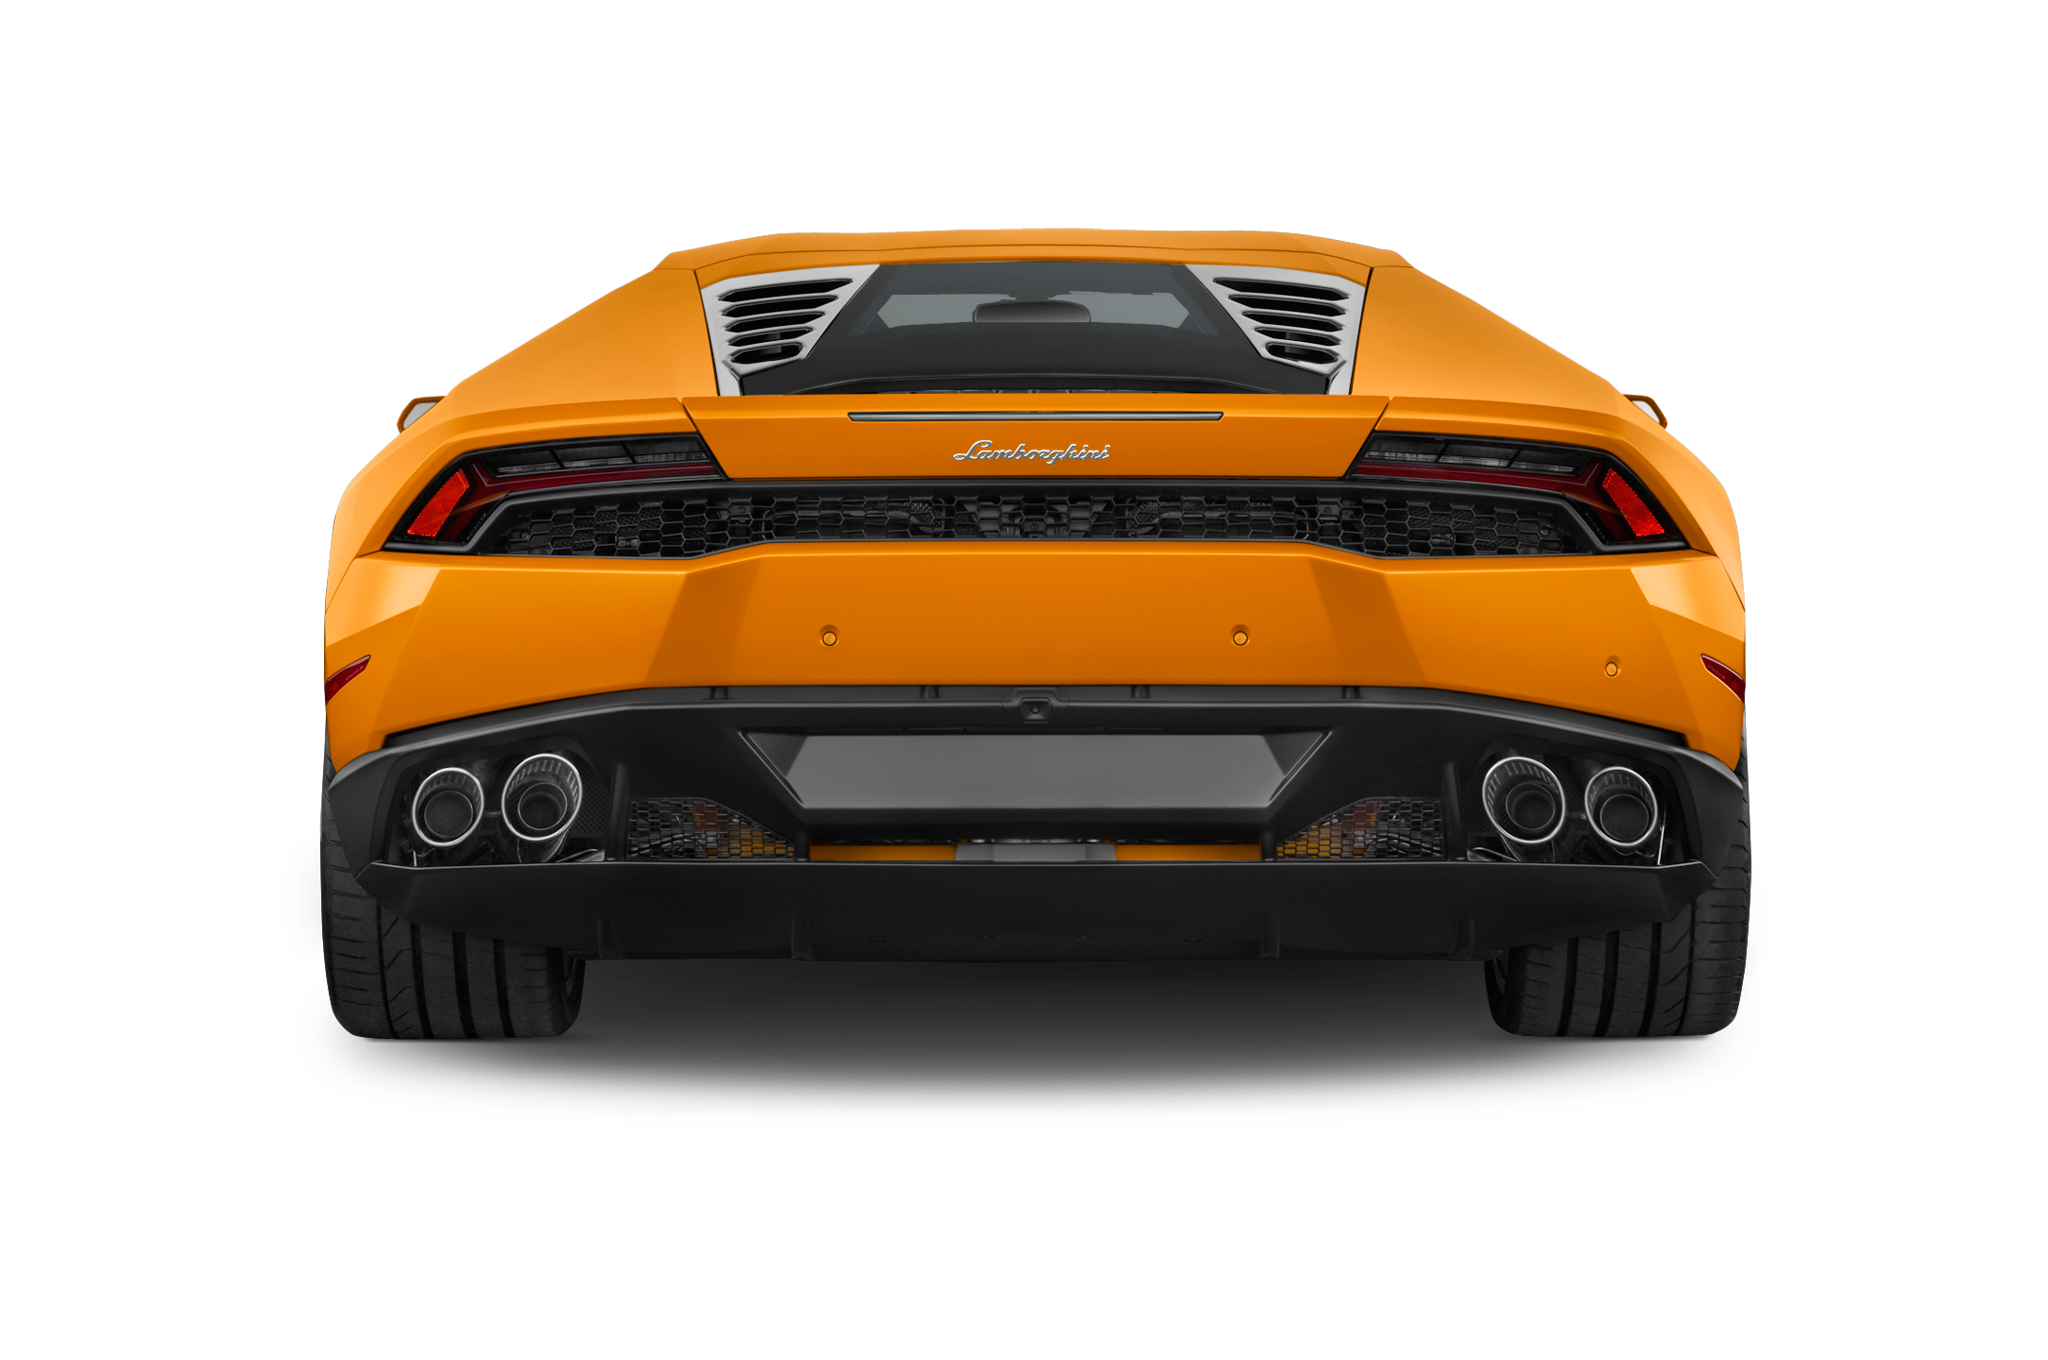 edition huracan news and vos money cars by performance top speed n lamborghini clip final hurac reviews